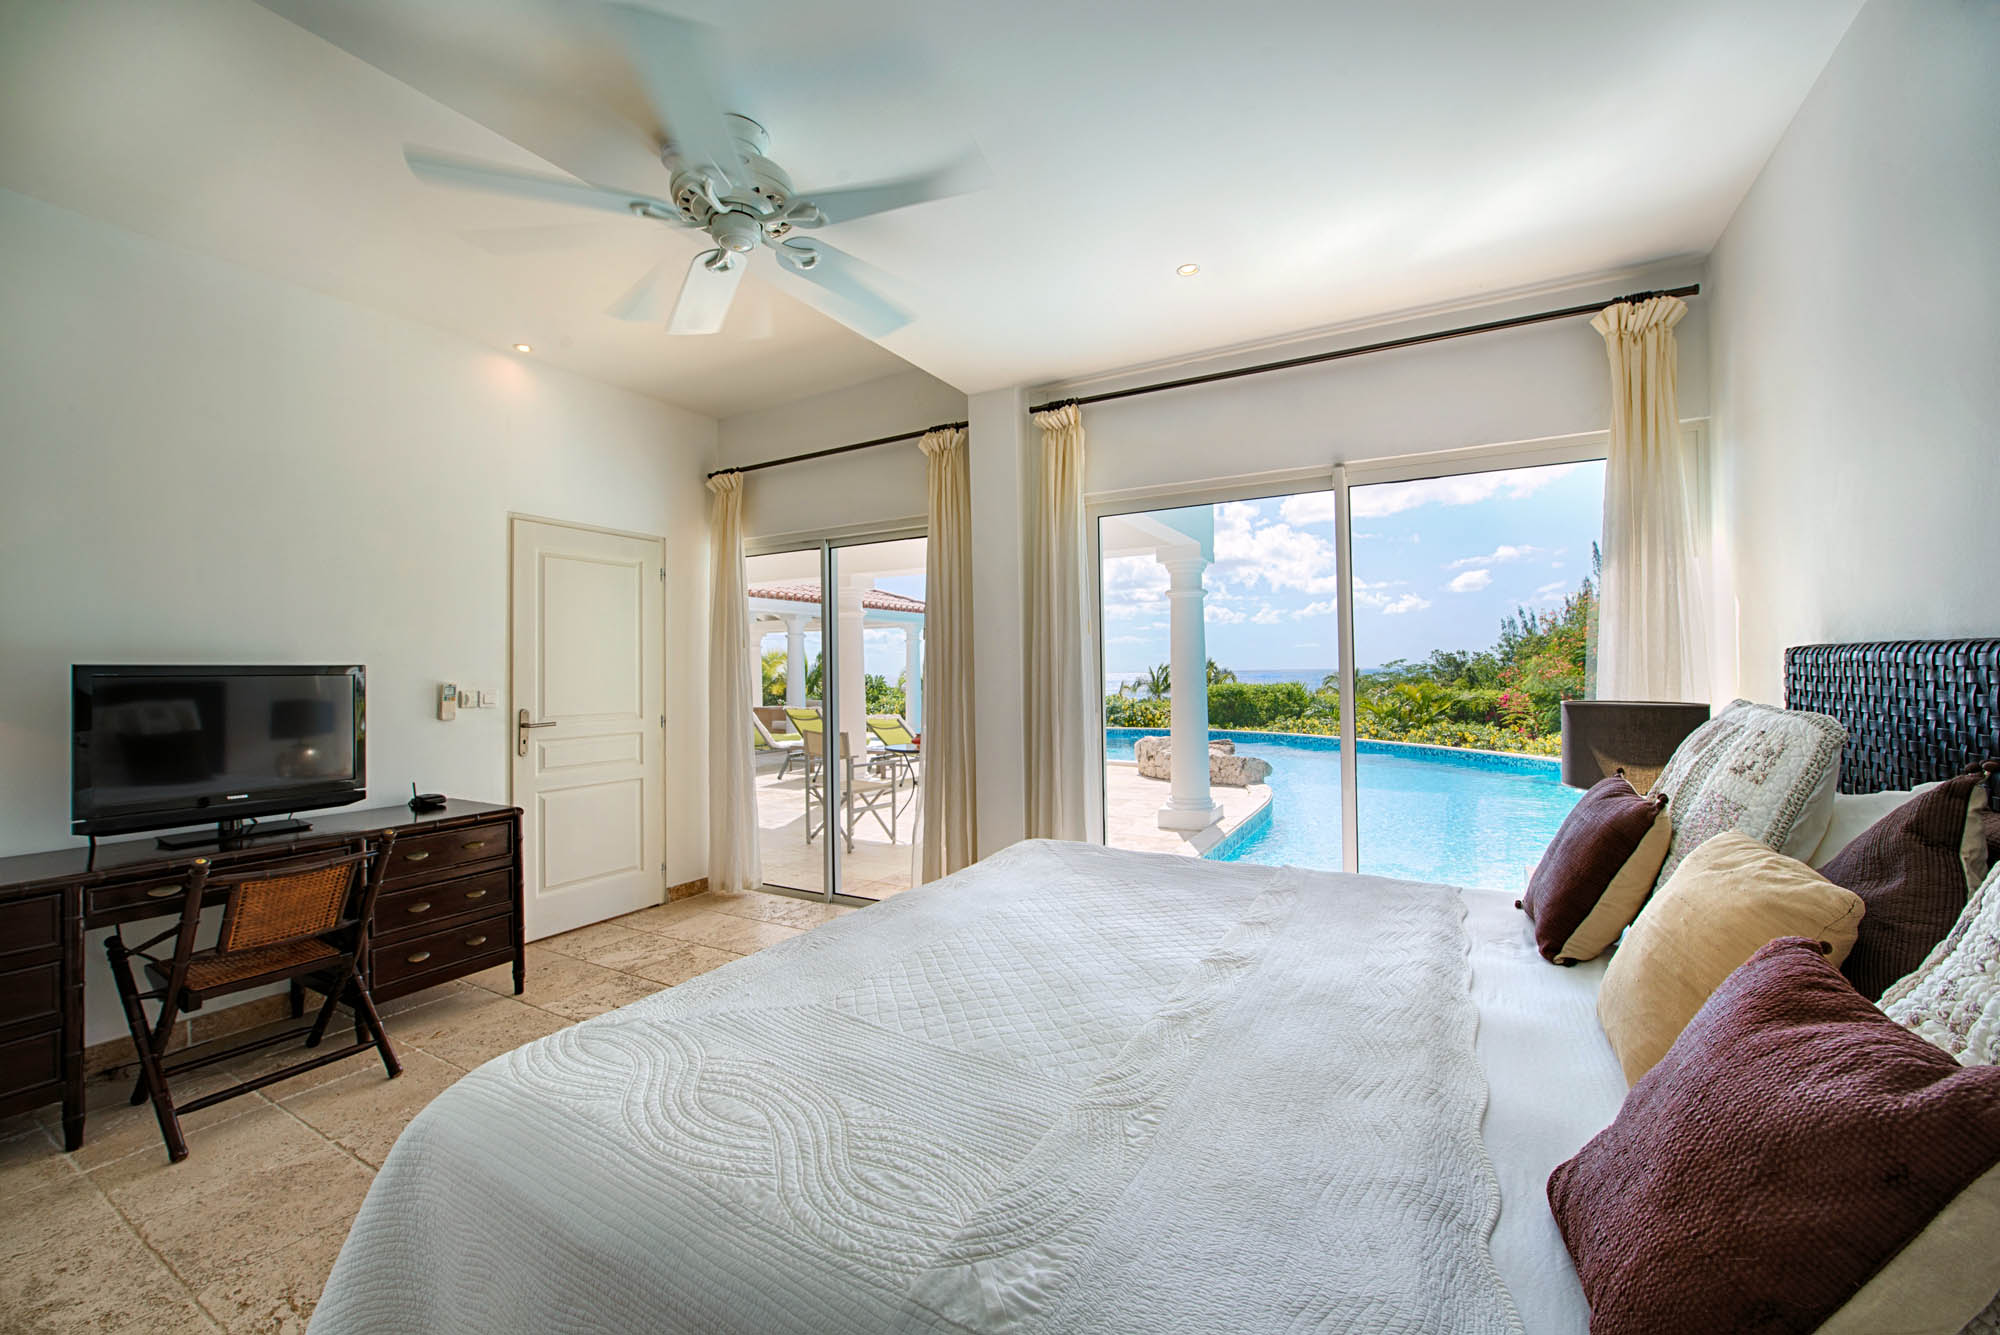 The guest bedroom of this Saint Martin villa rental opens to the living area and to the swimming pool.